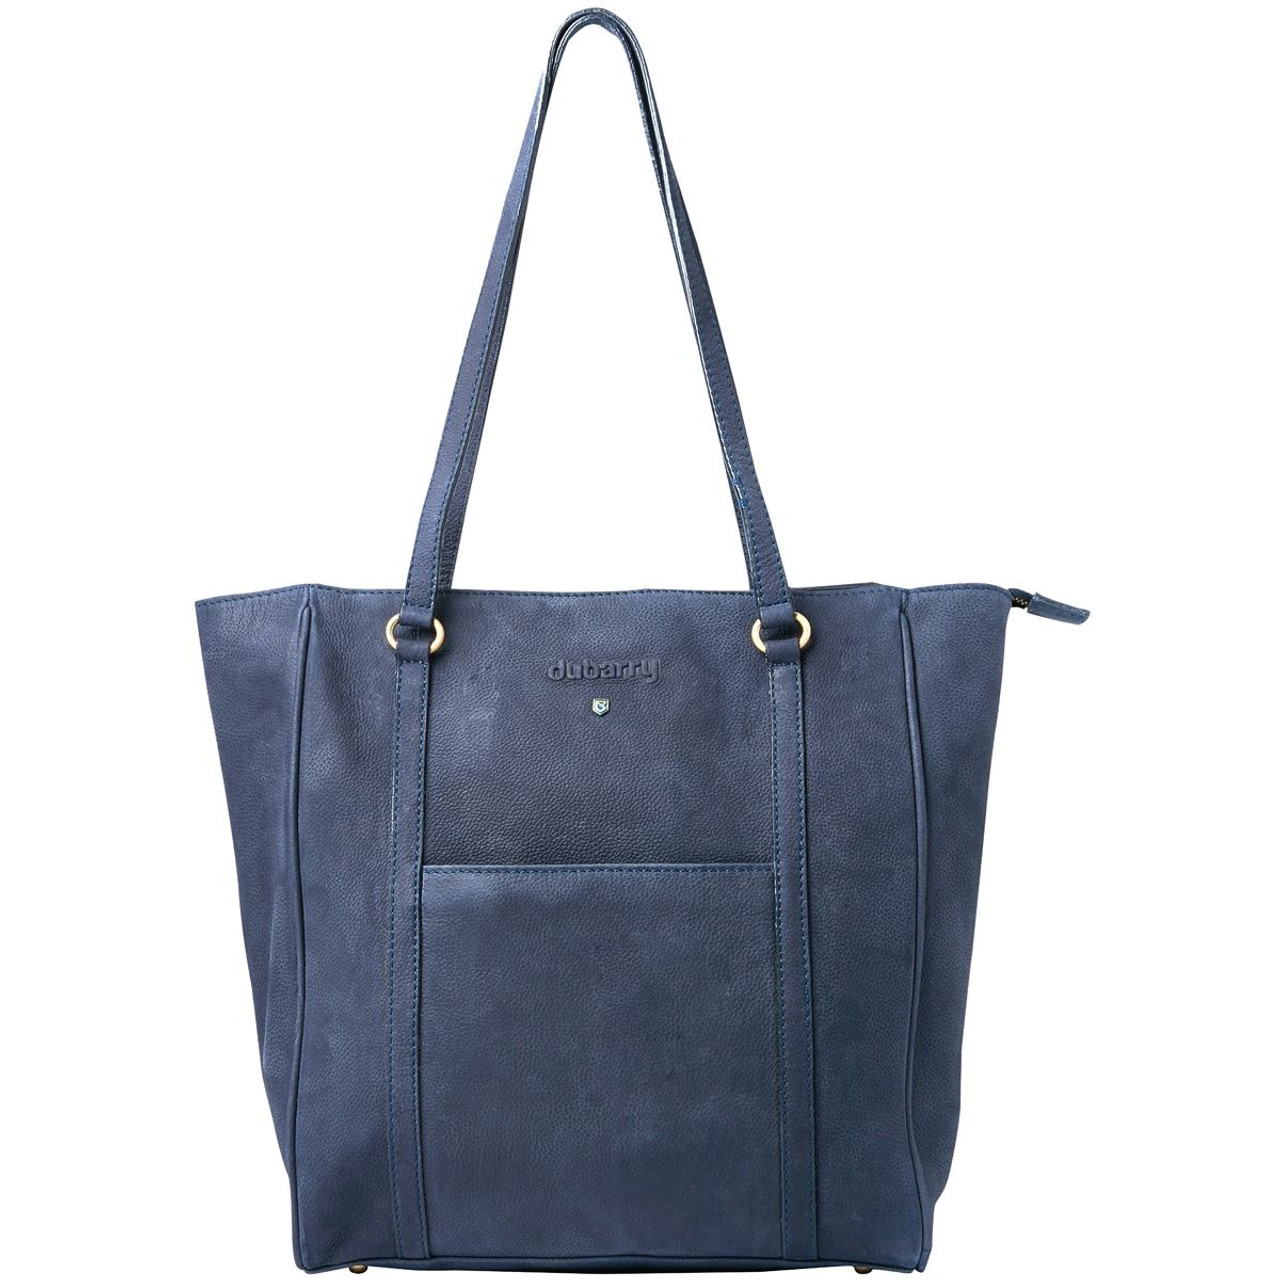 Dubarry Arcadia Tote Bag in Navy